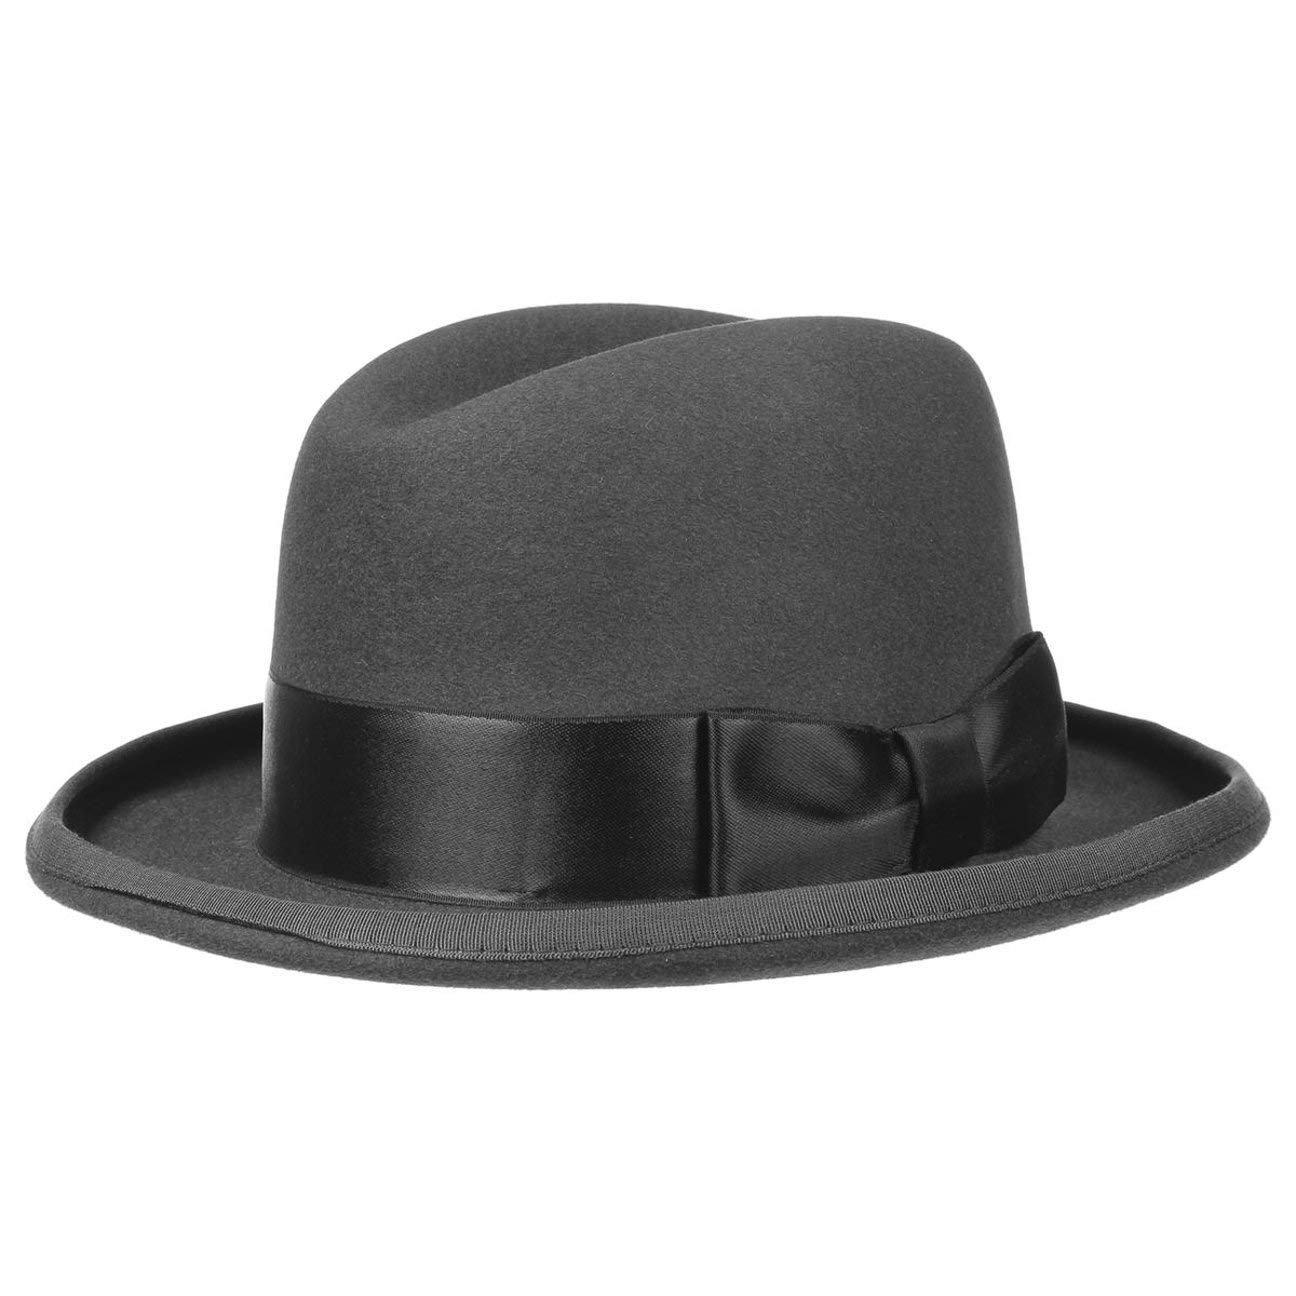 Men's Vintage Christmas Gift Ideas Stetson Saks Homburg Fur Felt Hat Women/Men | Made in The EU Men´s with Lining Grosgrain Band Piping Summer-Winter £139.00 AT vintagedancer.com